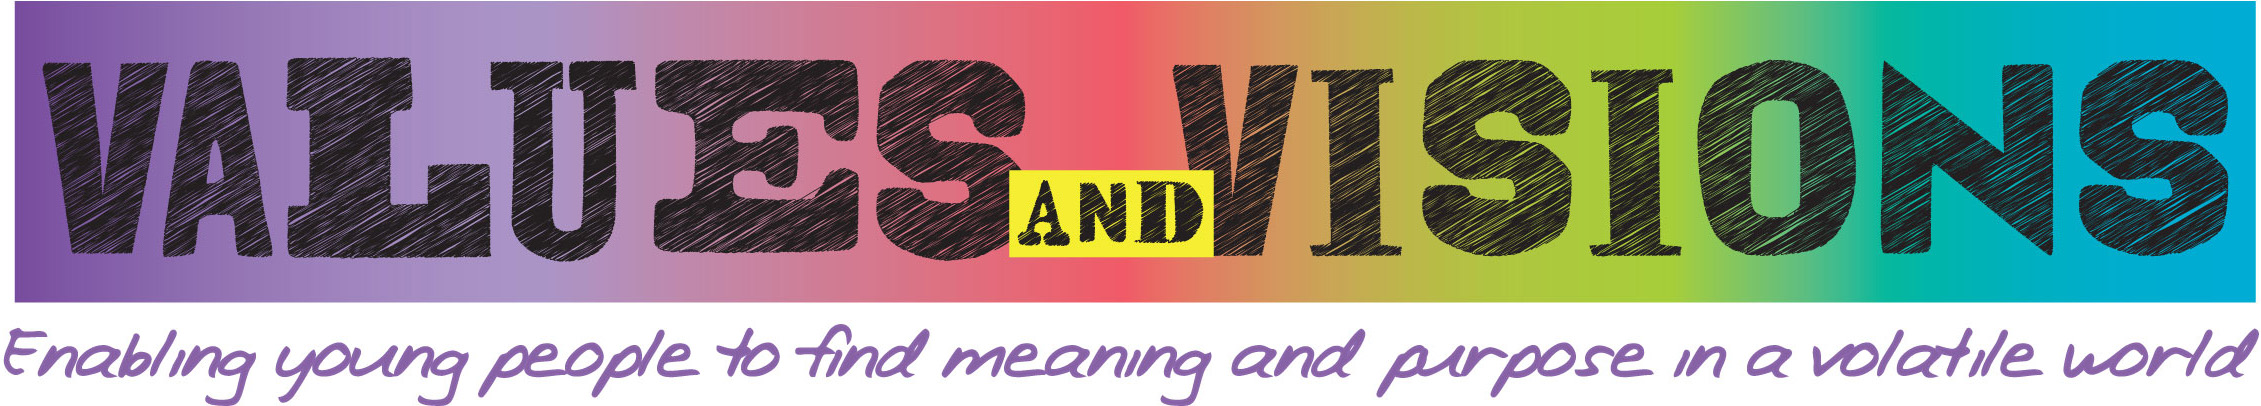 Values and Visions Banner